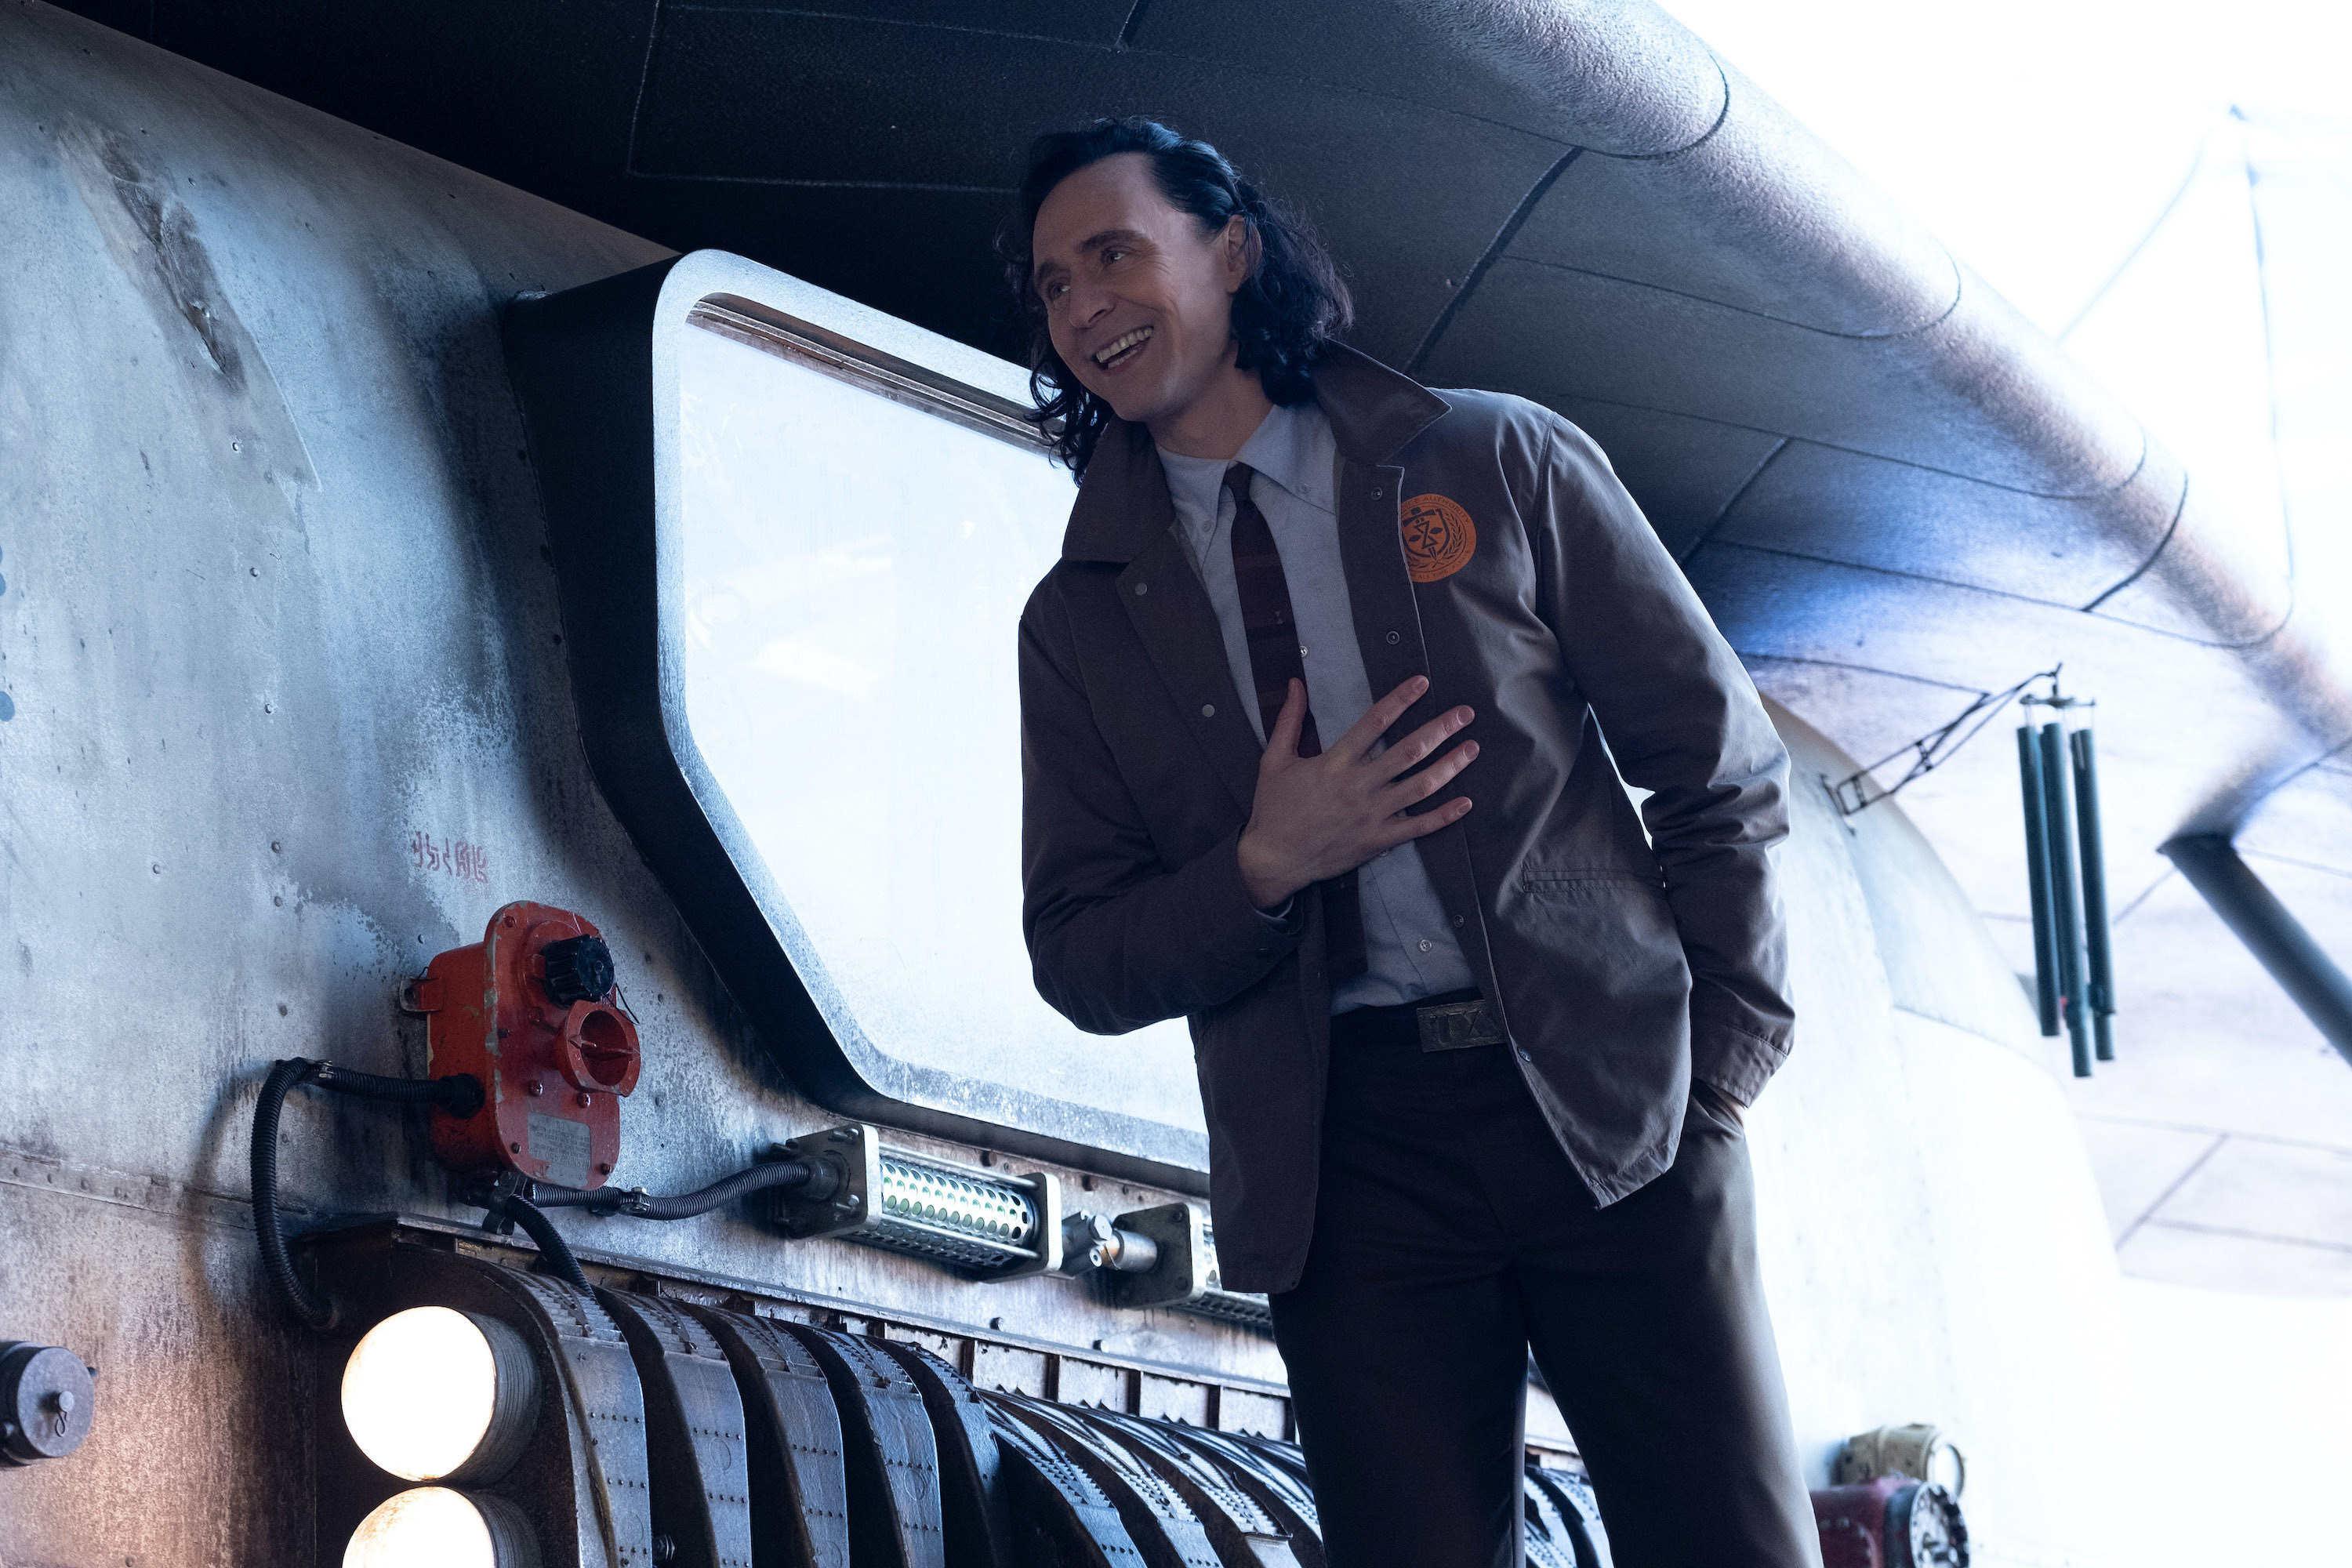 Loki leans forward with his hand on his chest and smiles